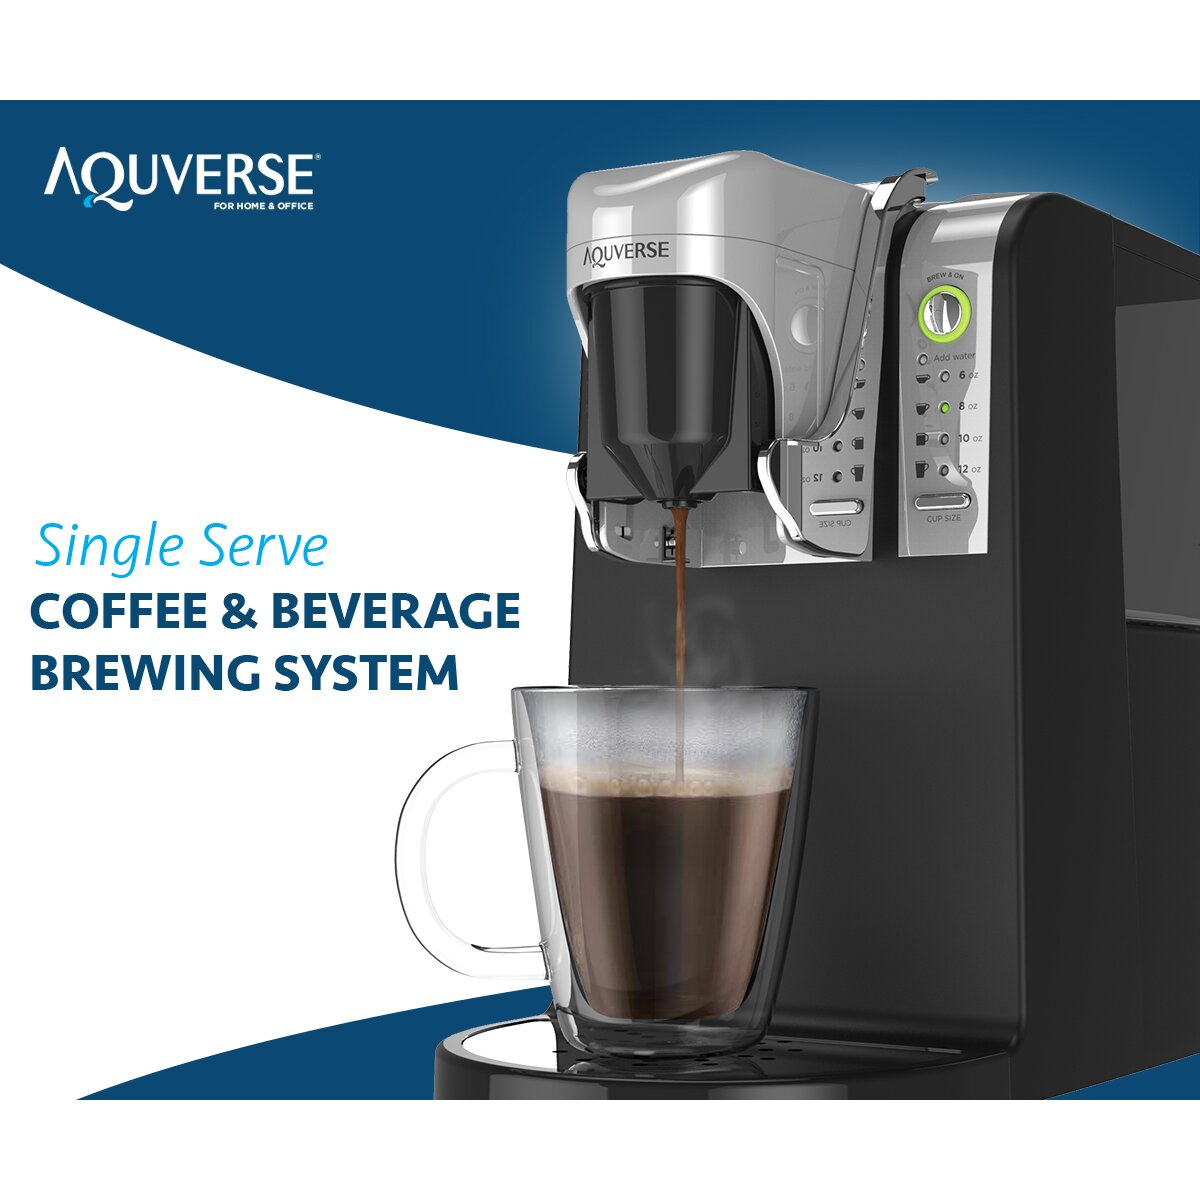 Aquverse Single Serve Coffee Maker | Wayfair